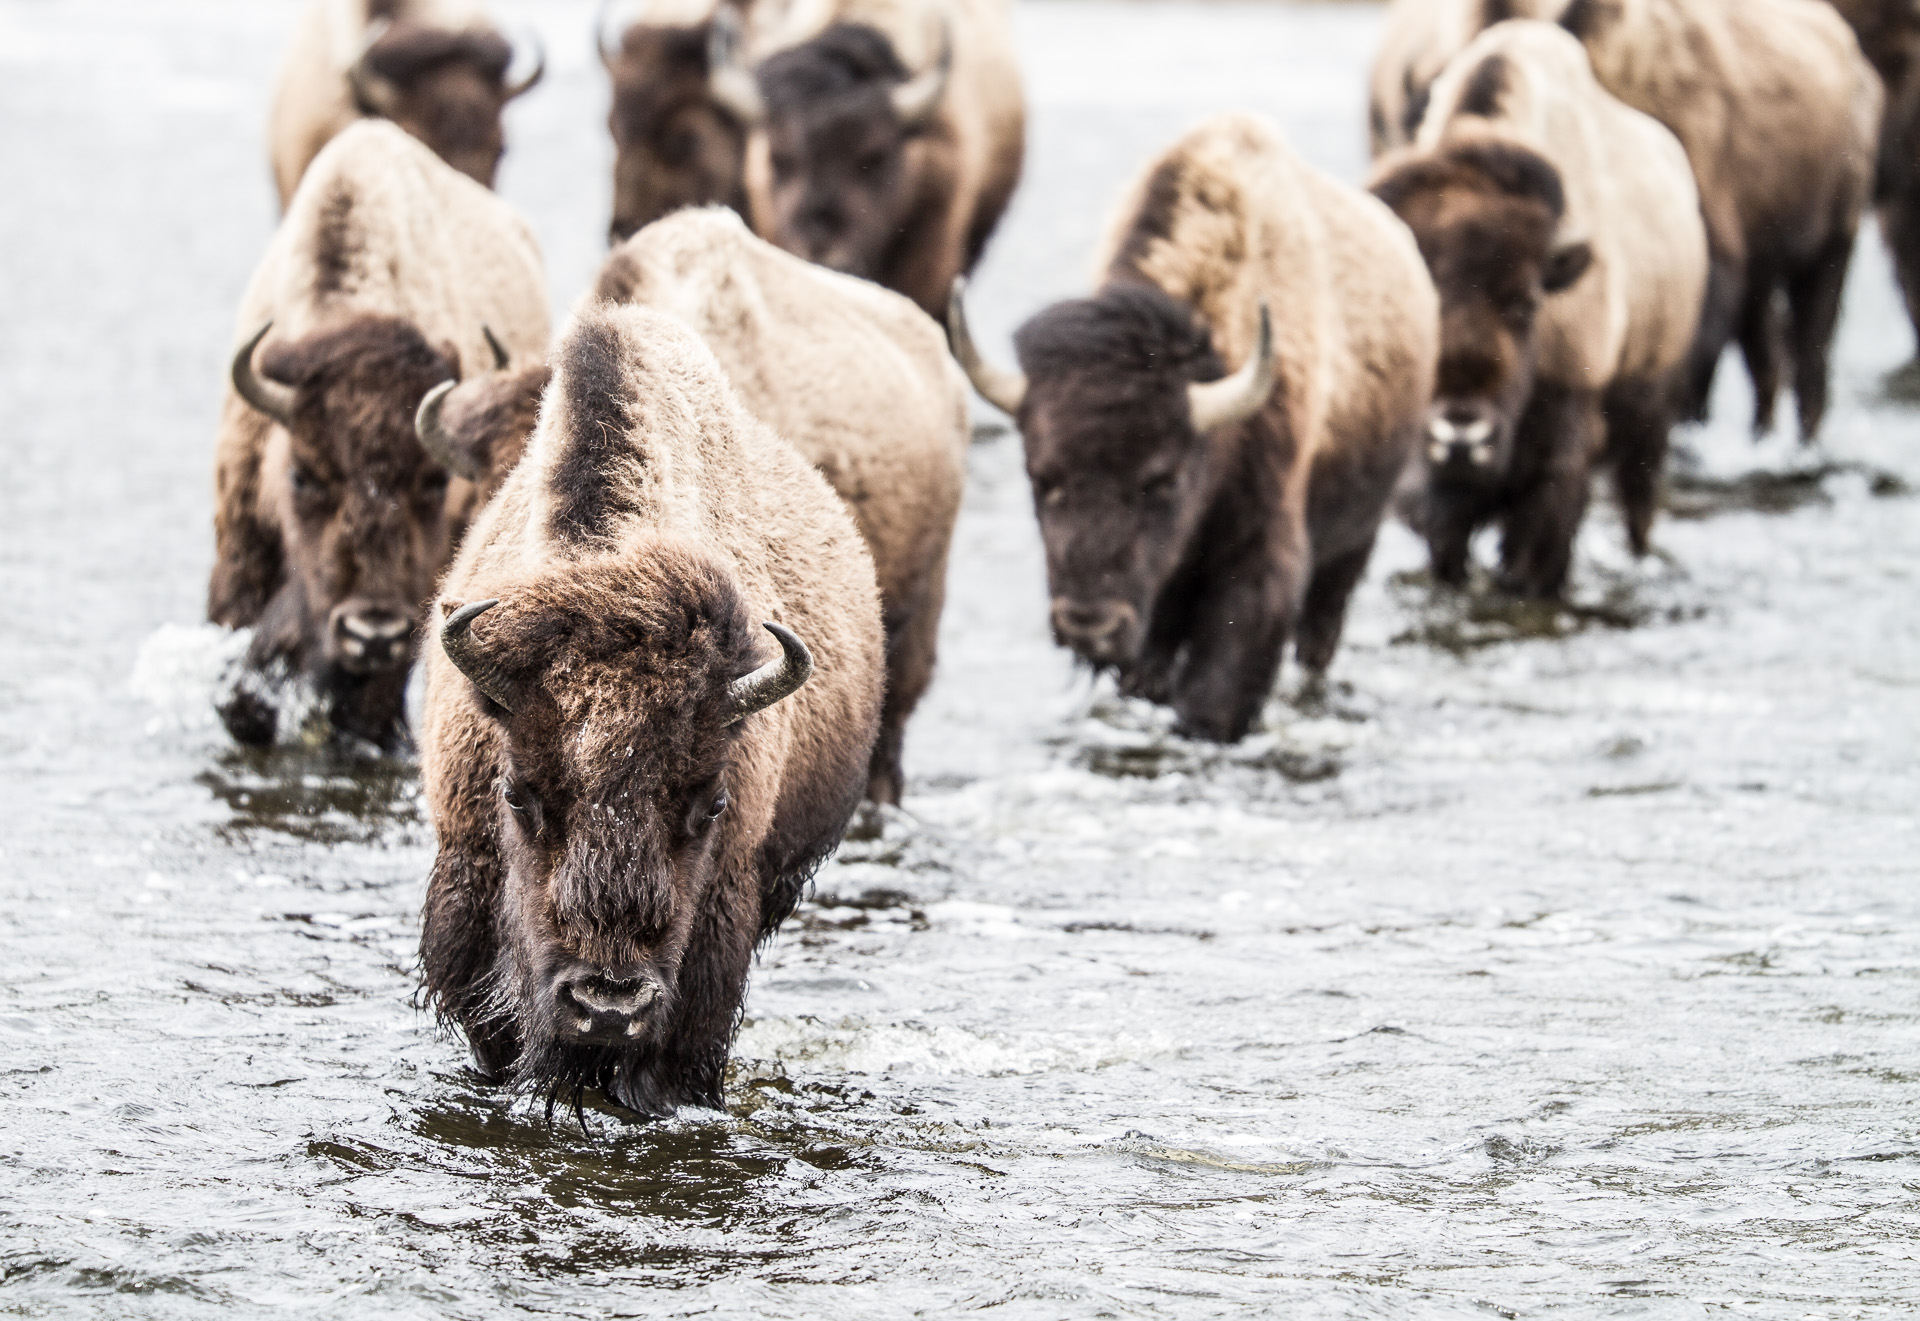 Bison heard formation crossing river low angle Canon 200mm f2 lens Yellowstone National Park WY Sparky Stensaas-0296